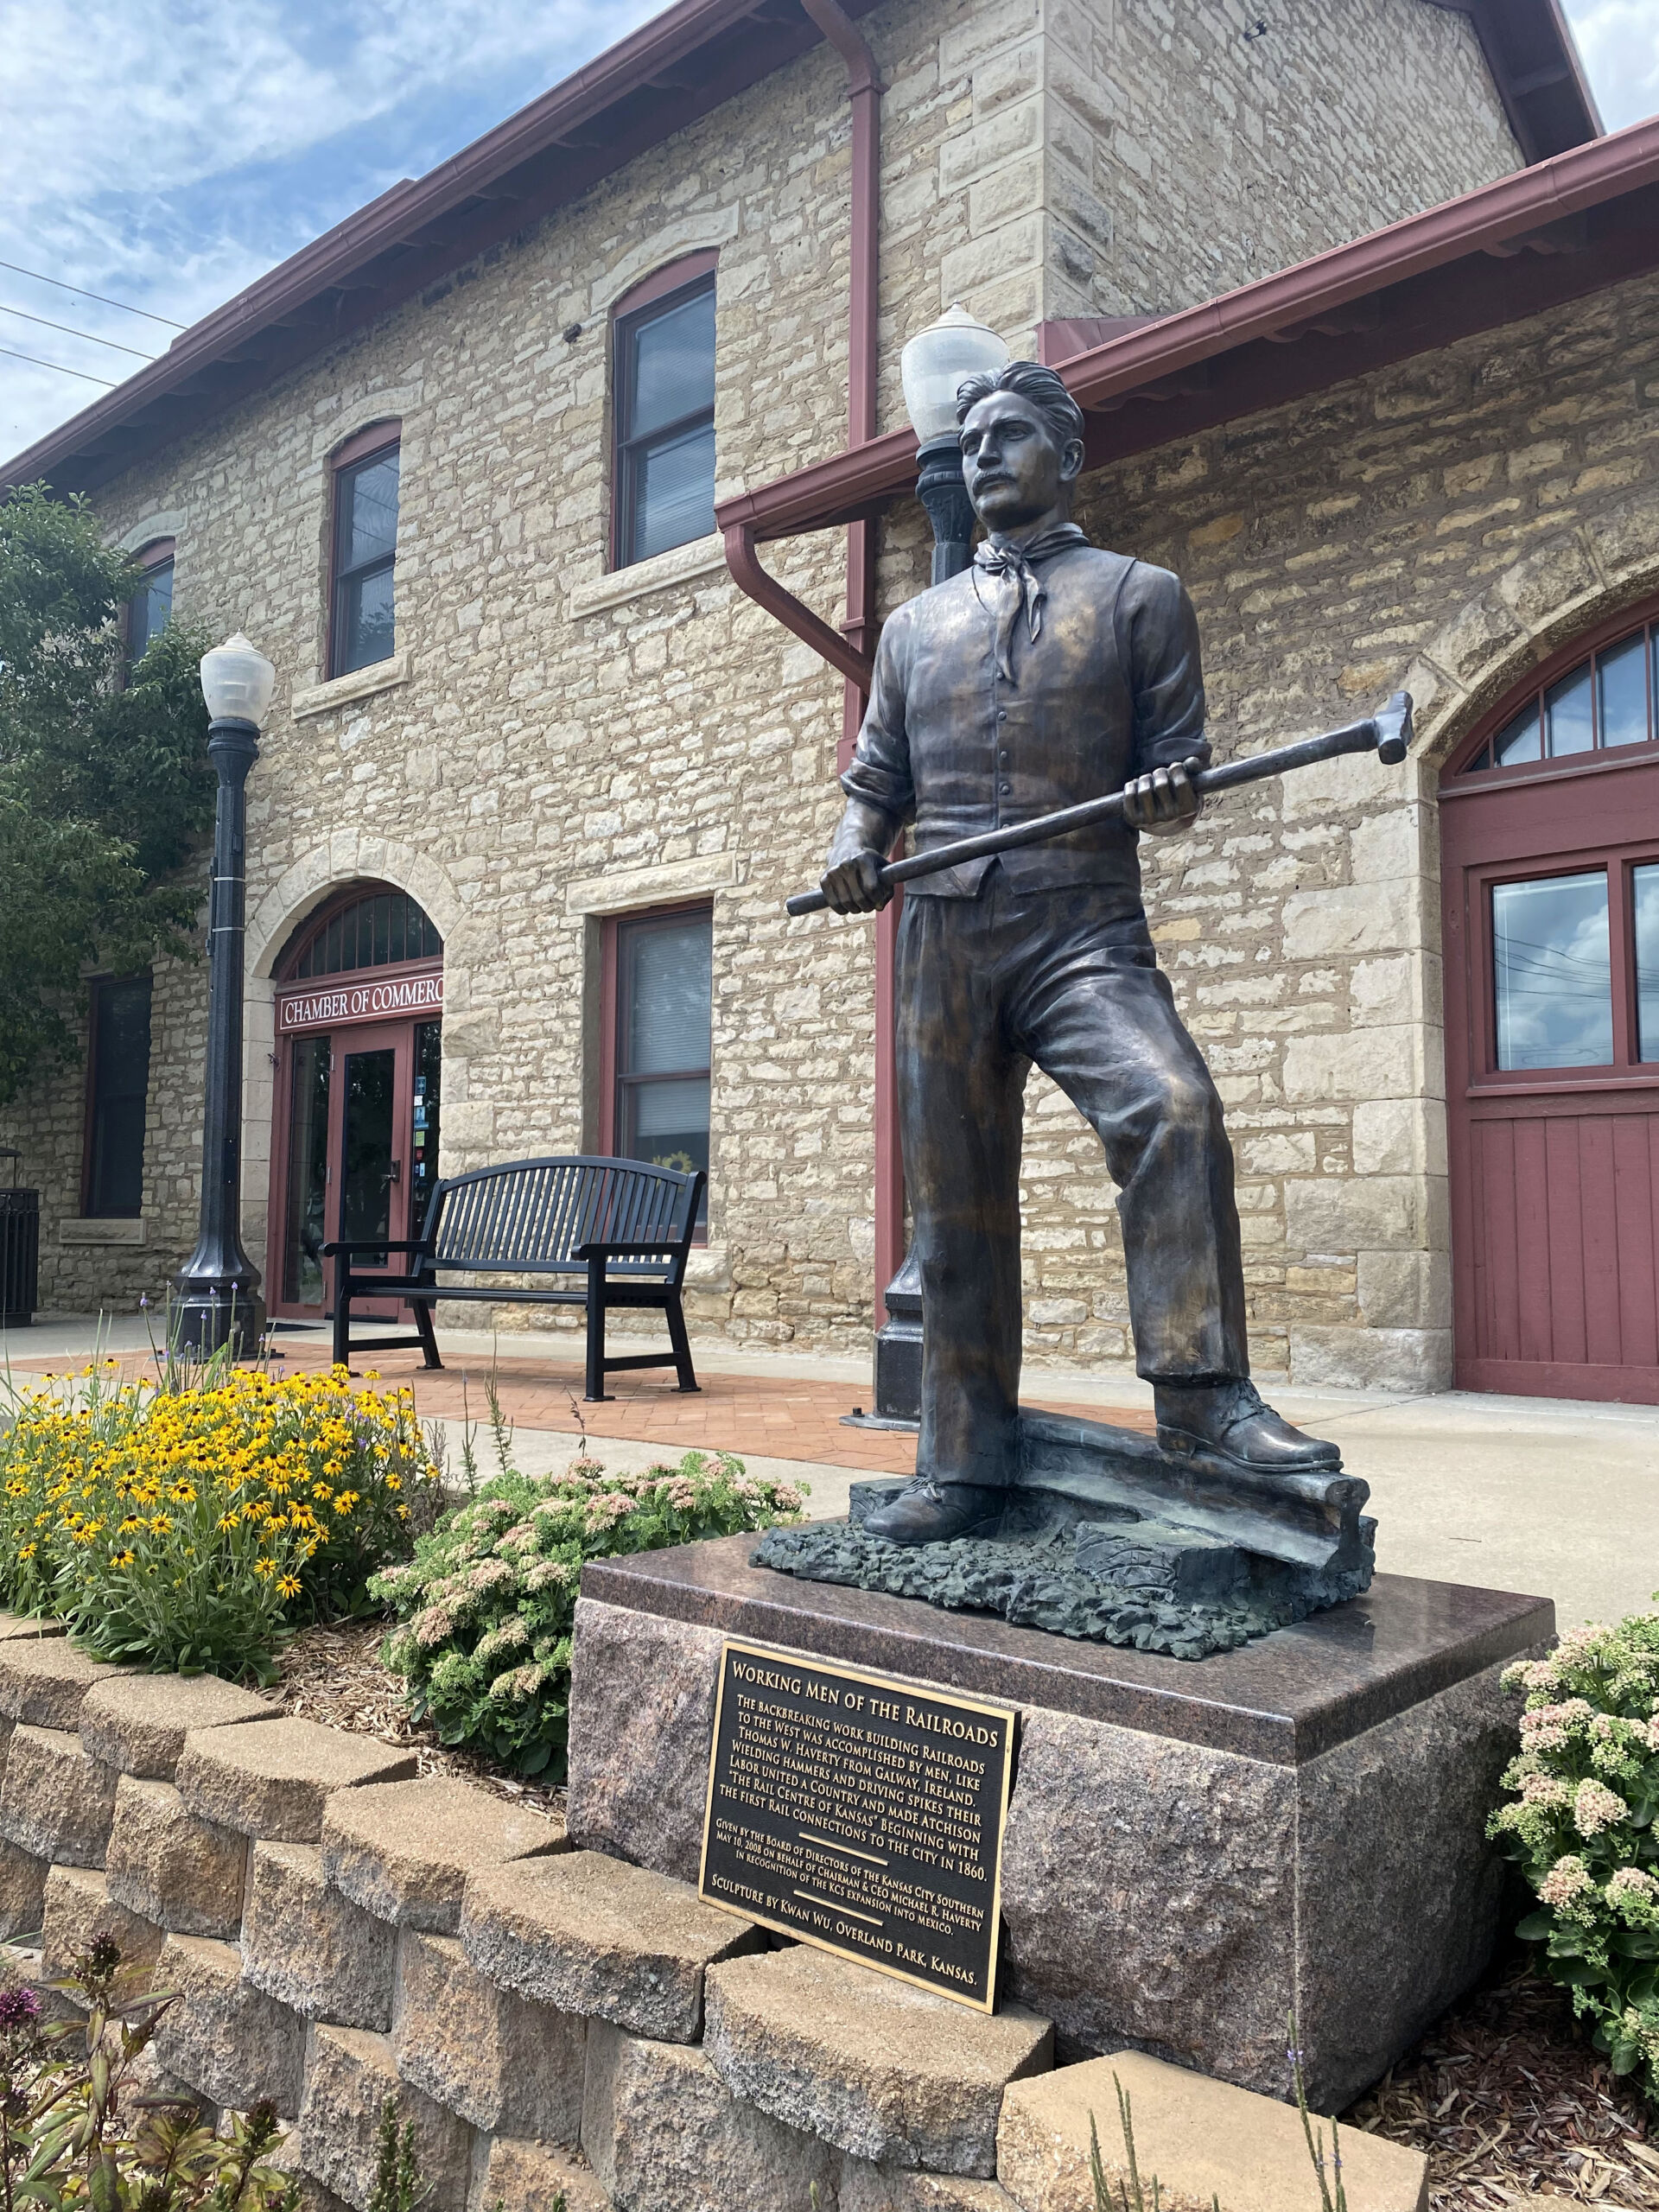 Statue of railroad worker in front of the Atchison County Historical Museum in Atchison, Kansas